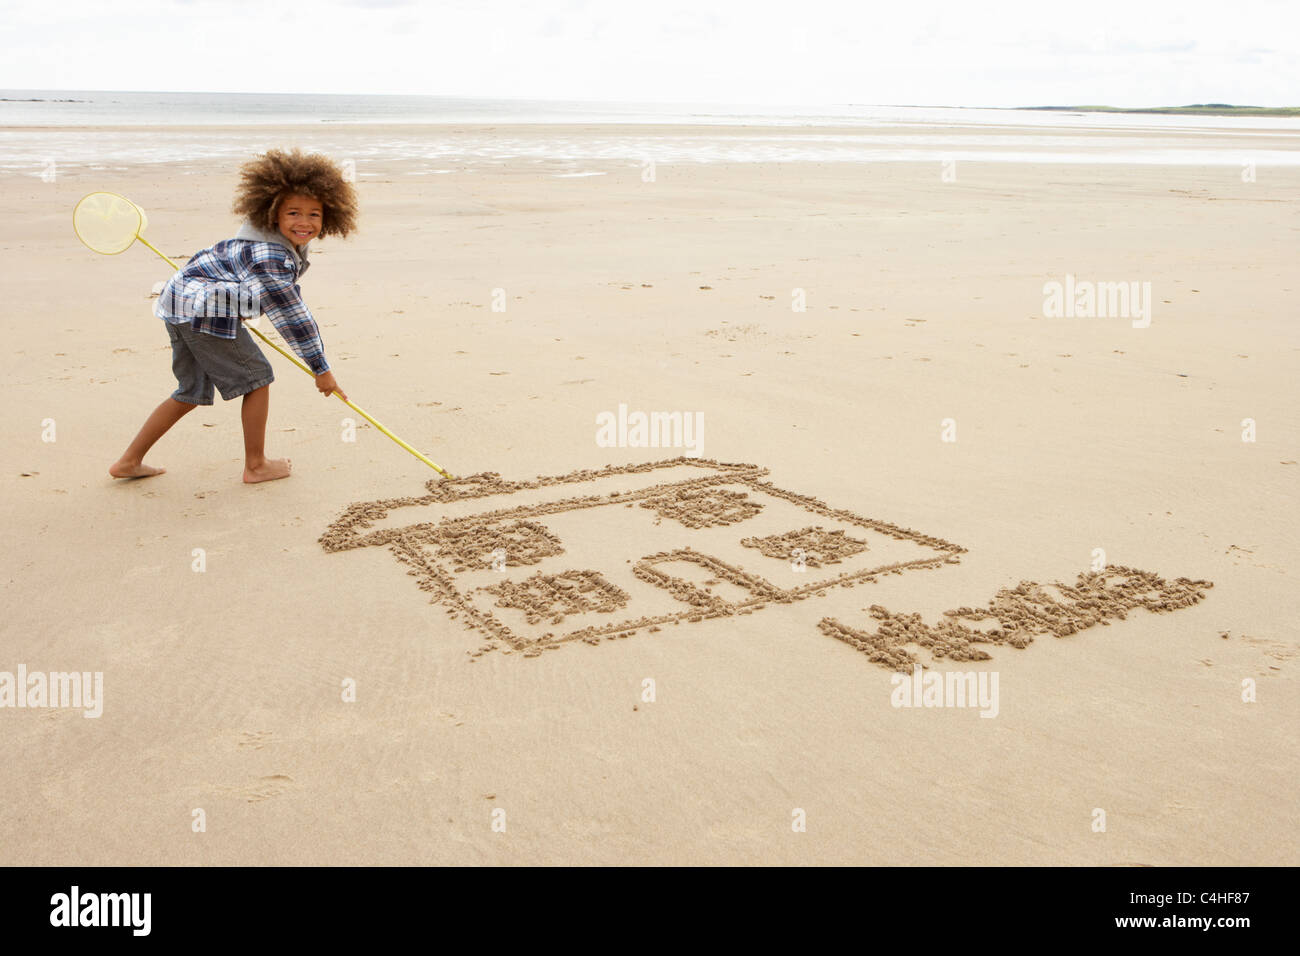 Boy drawing in sand - Stock Image